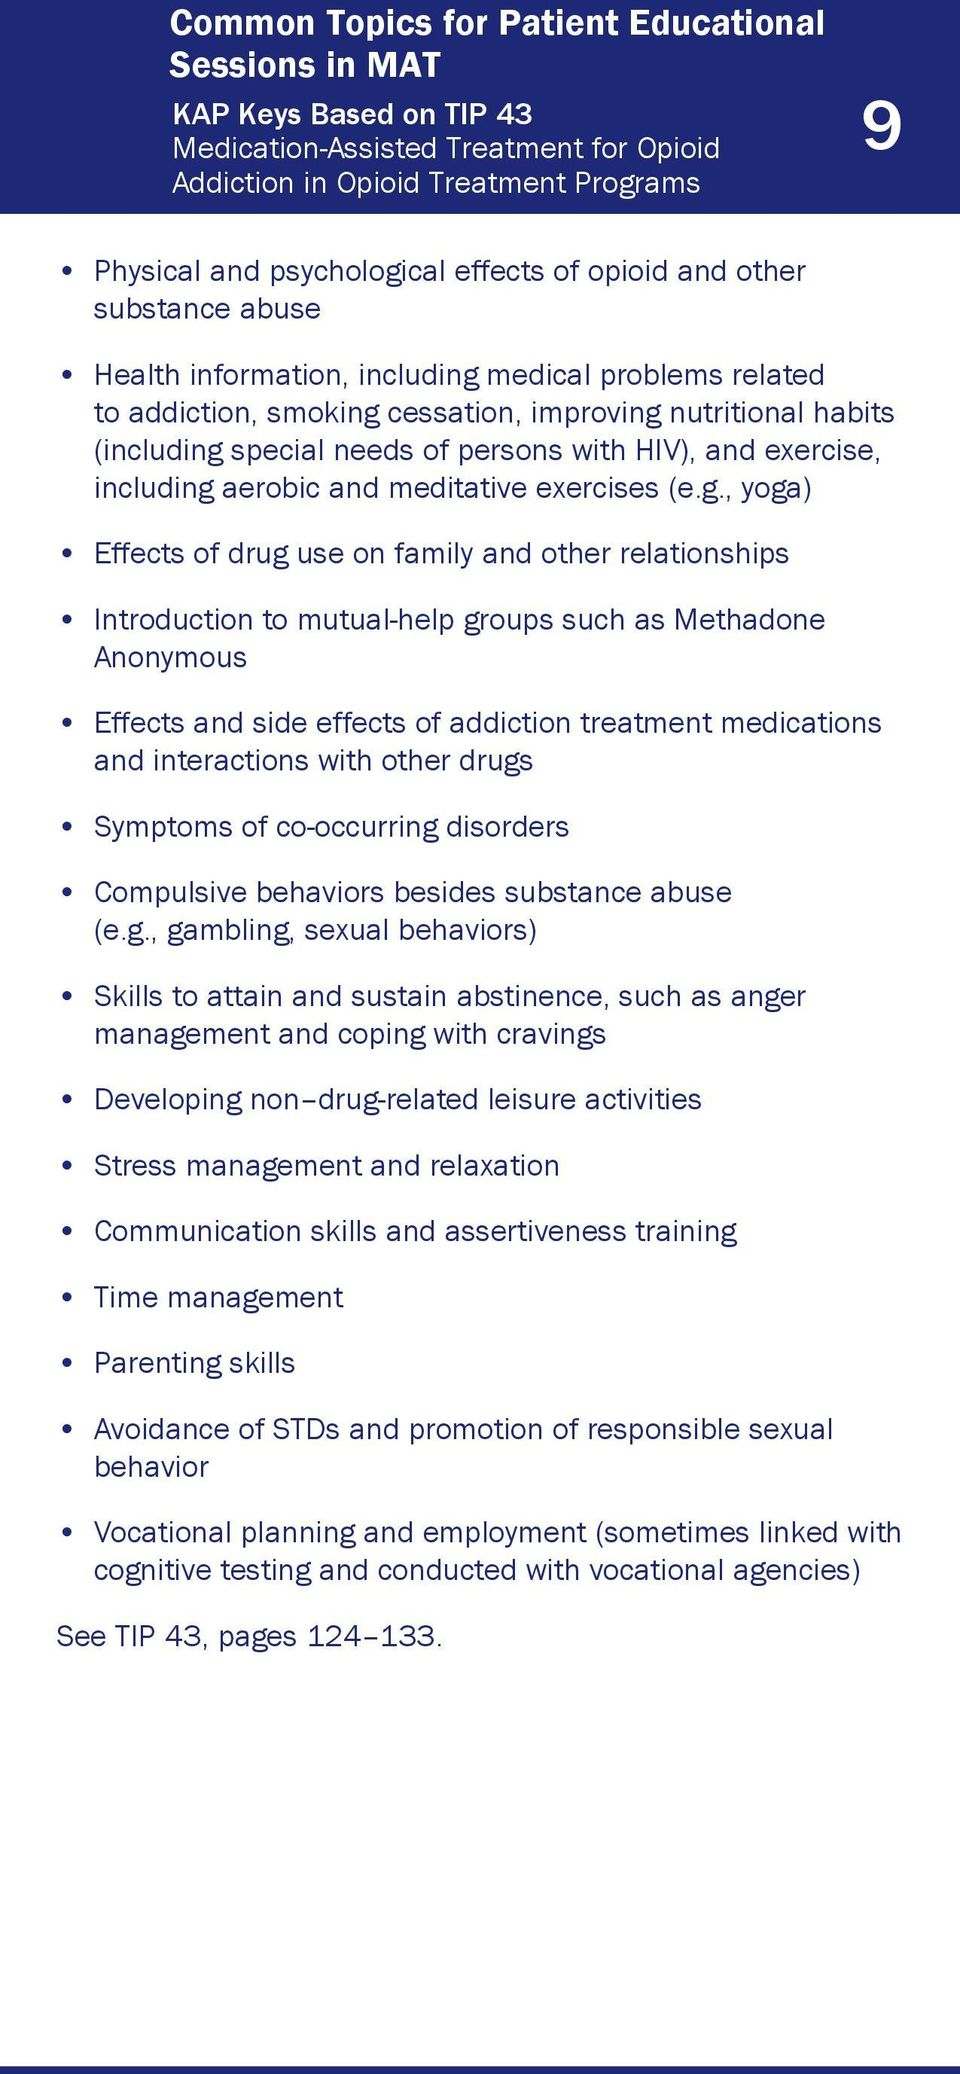 addiction treatment medications and interactions with other drugs Symptoms of co-occurring disorders Compulsive behaviors besides substance abuse management and